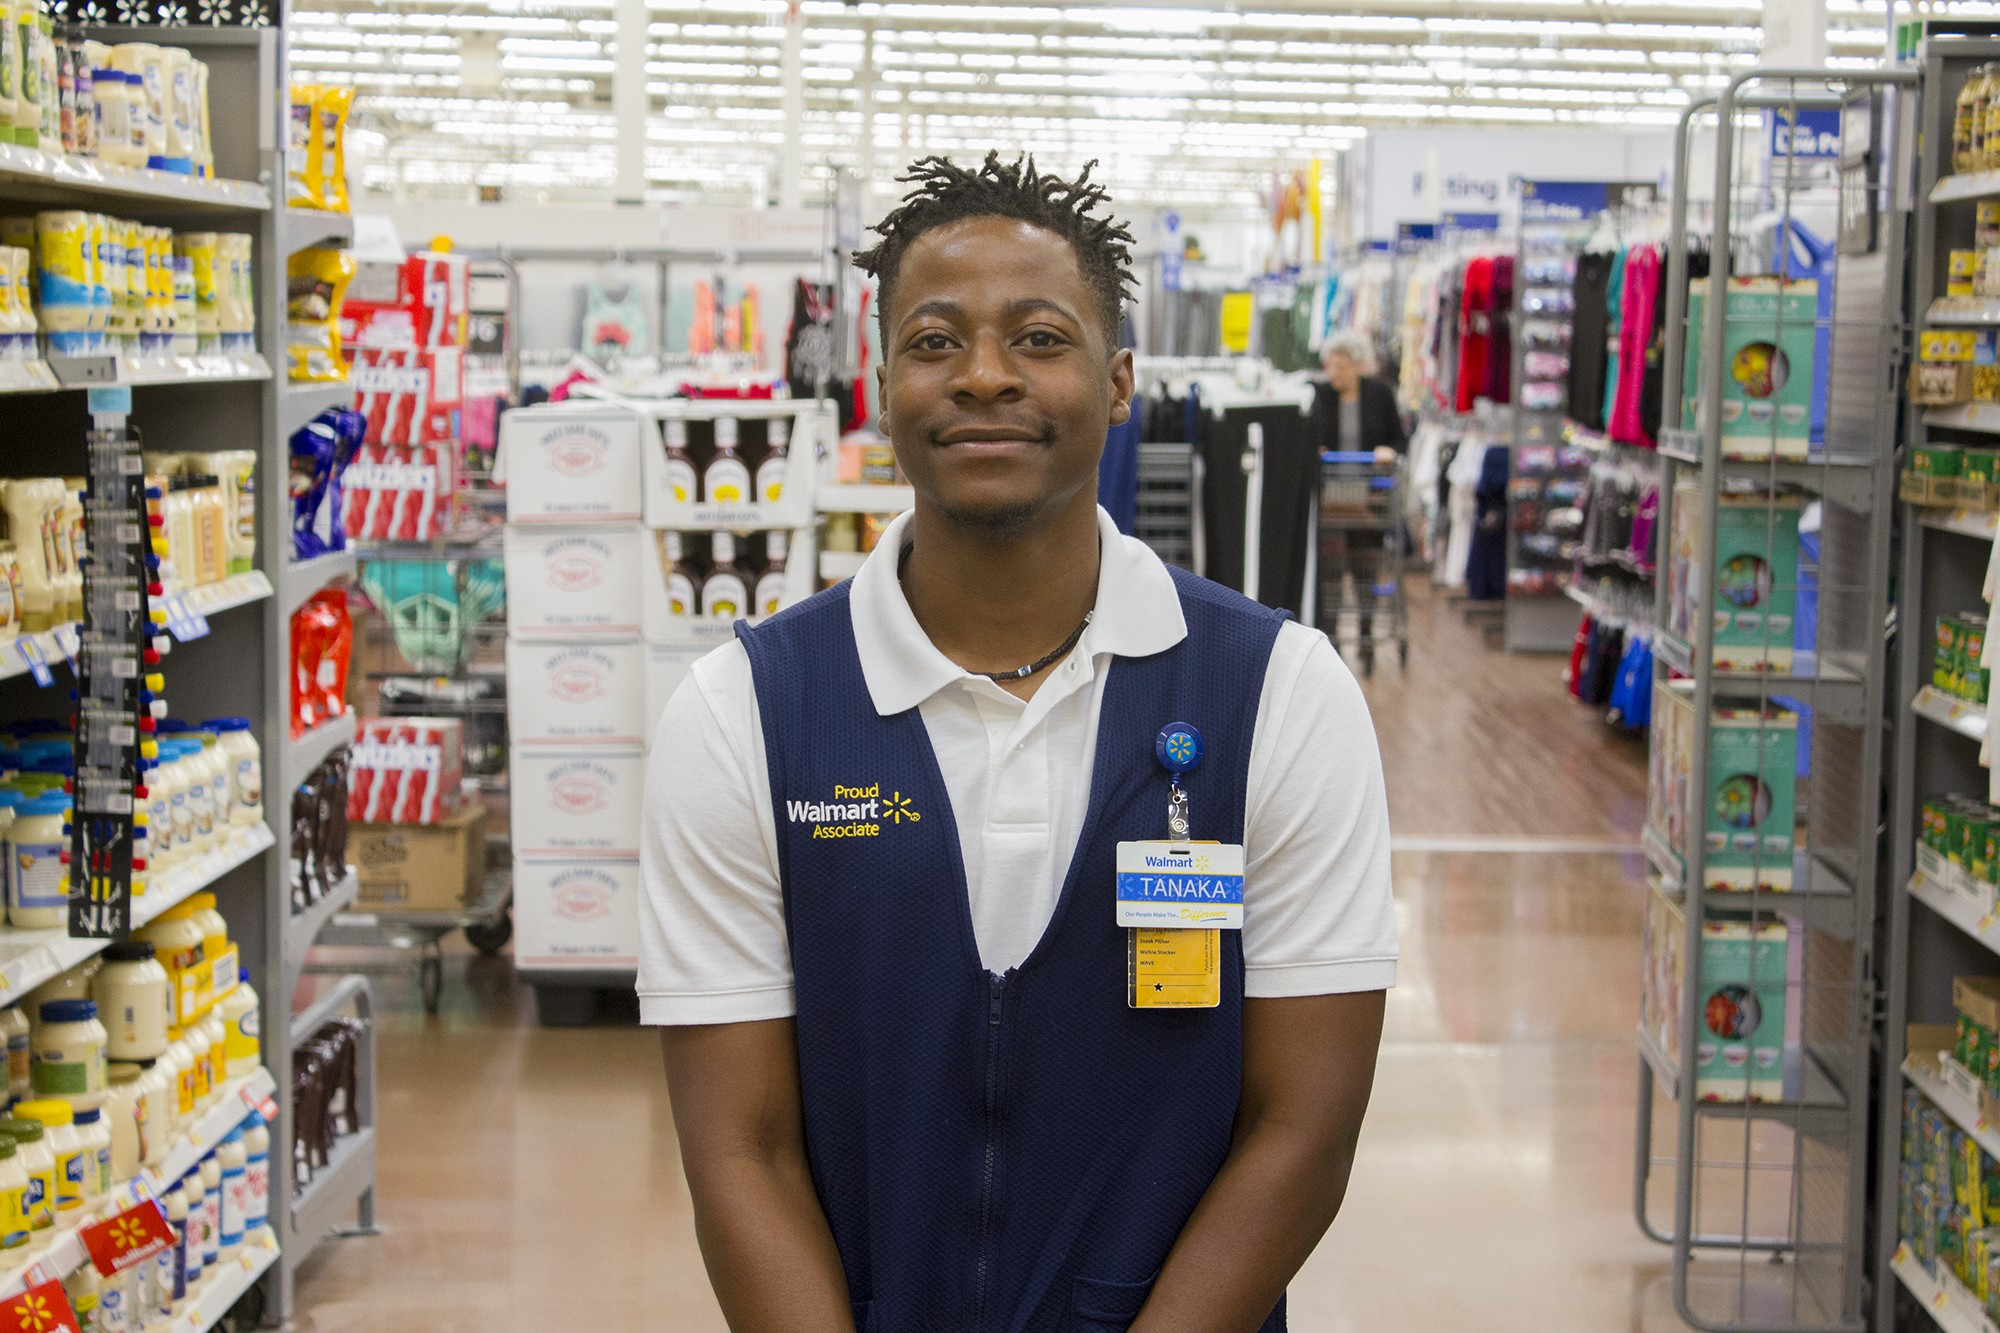 Walmart associate Tanaka in a Walmart supercenter